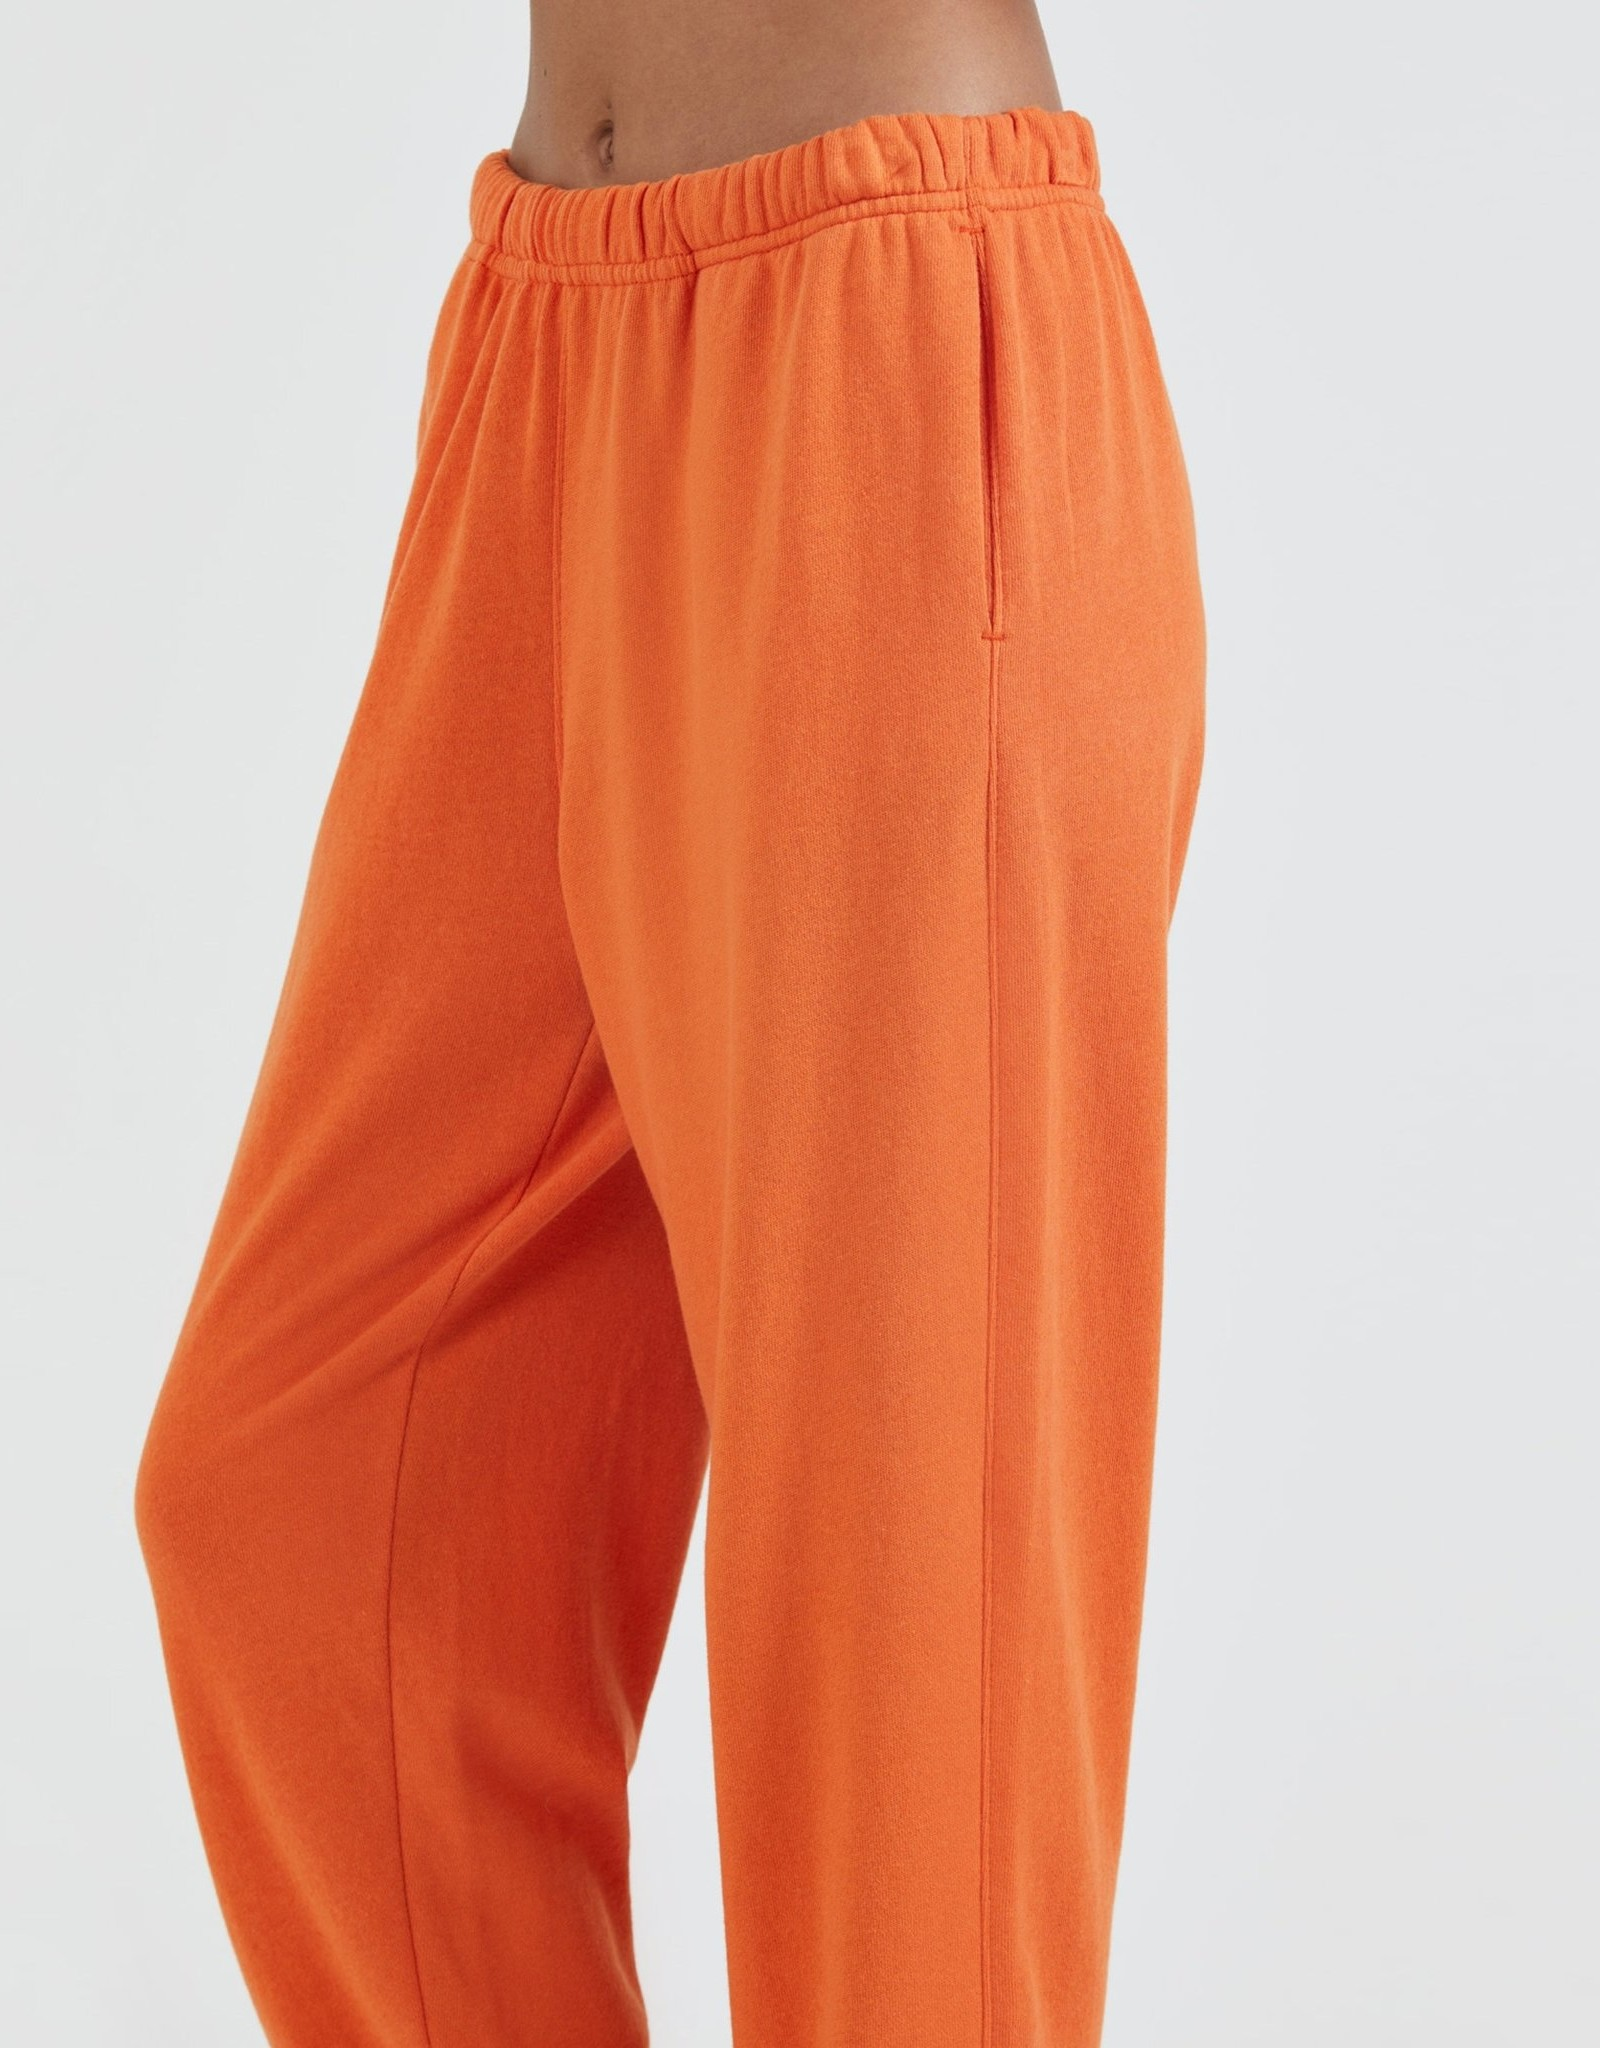 ATM French Terry Pull On Pant